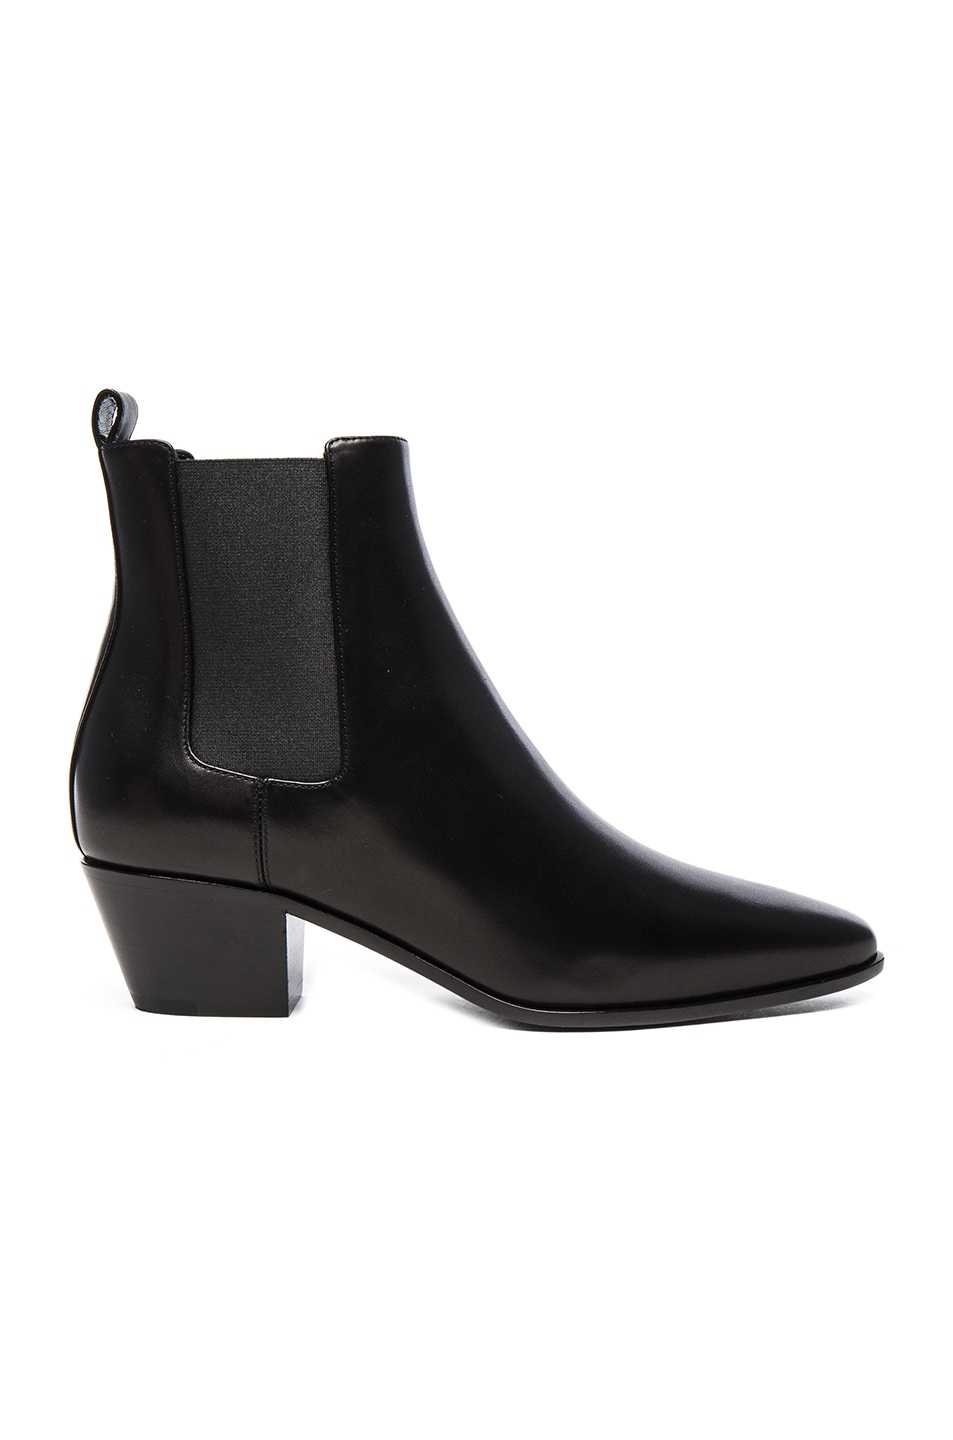 Image 1 of Saint Laurent Rock Leather Chelsea Boots in Black